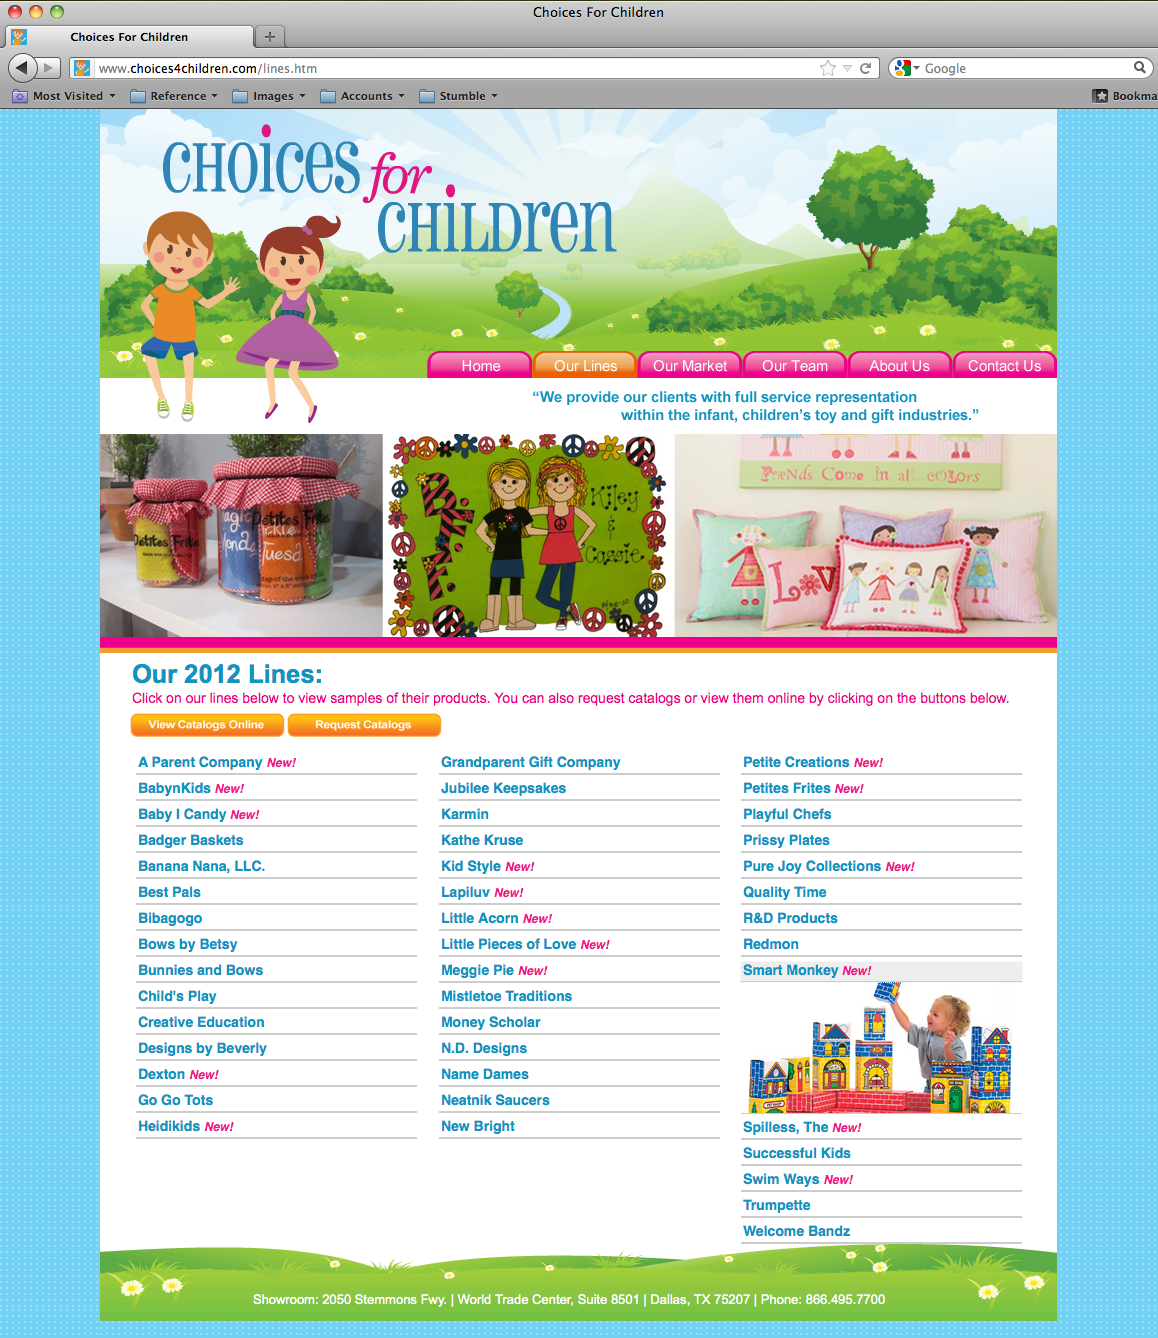 Educational games and videos from Curious George, Wild Kratts and other PBS KIDS shows!